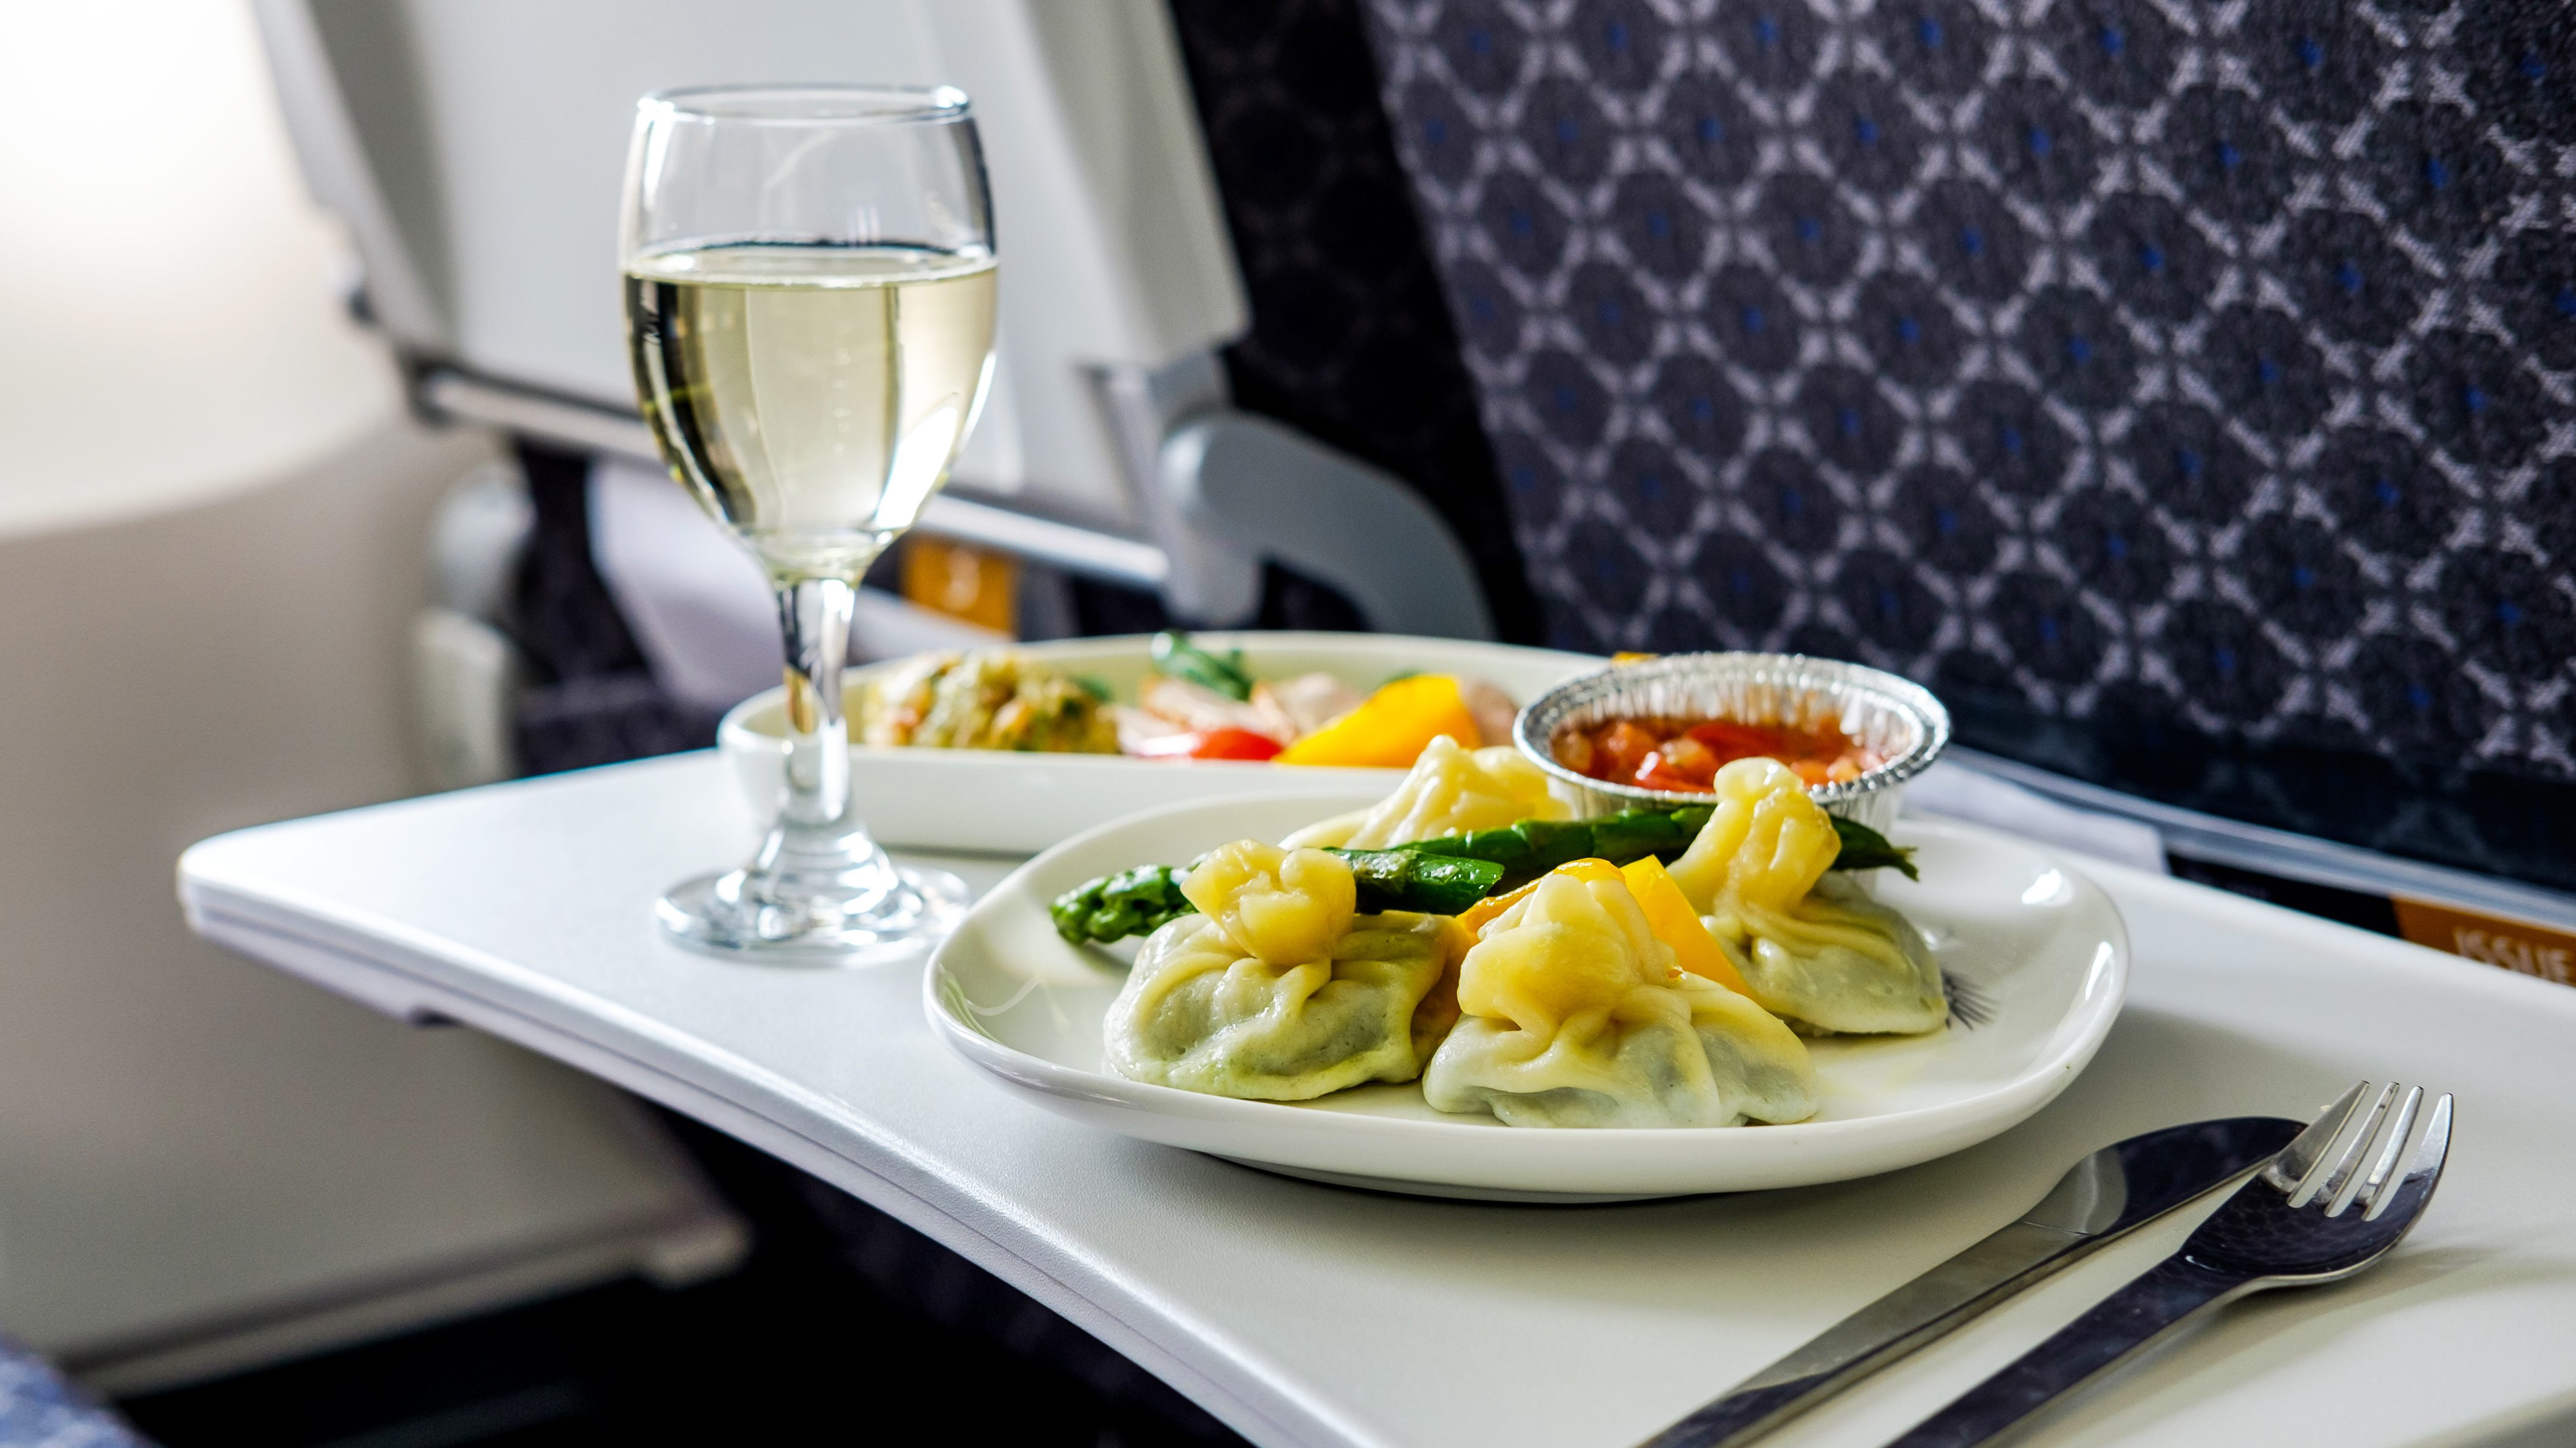 This Is What Happens to Uneaten Plane Food After Landing